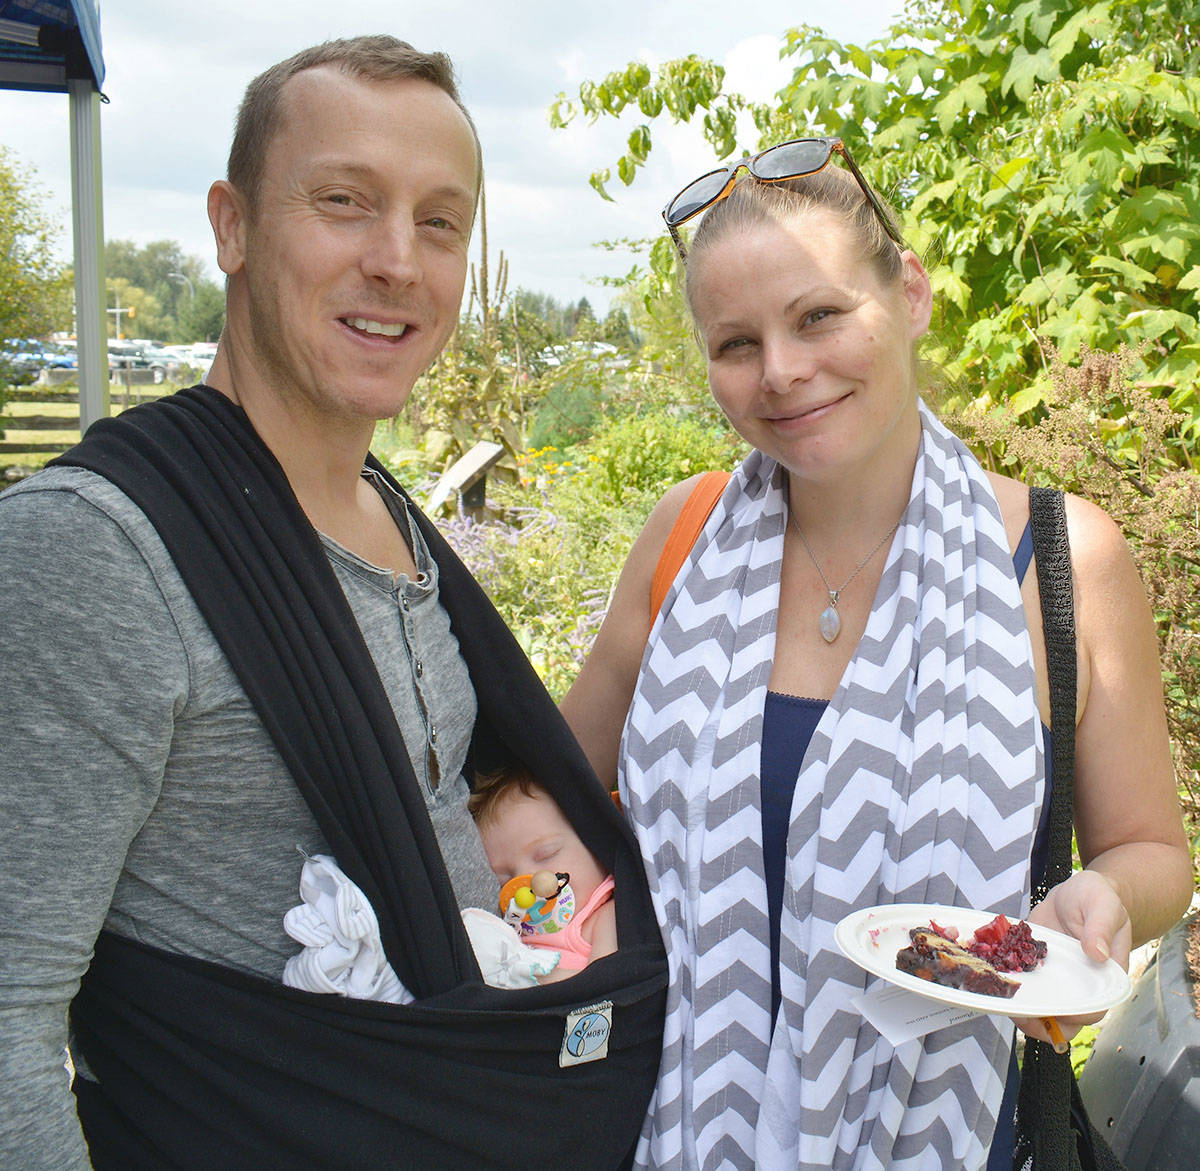 The Blackberry Bake-Off was Thursday, Aug. 22 at the Langley Demonstration Garden. (Langley Township photo)